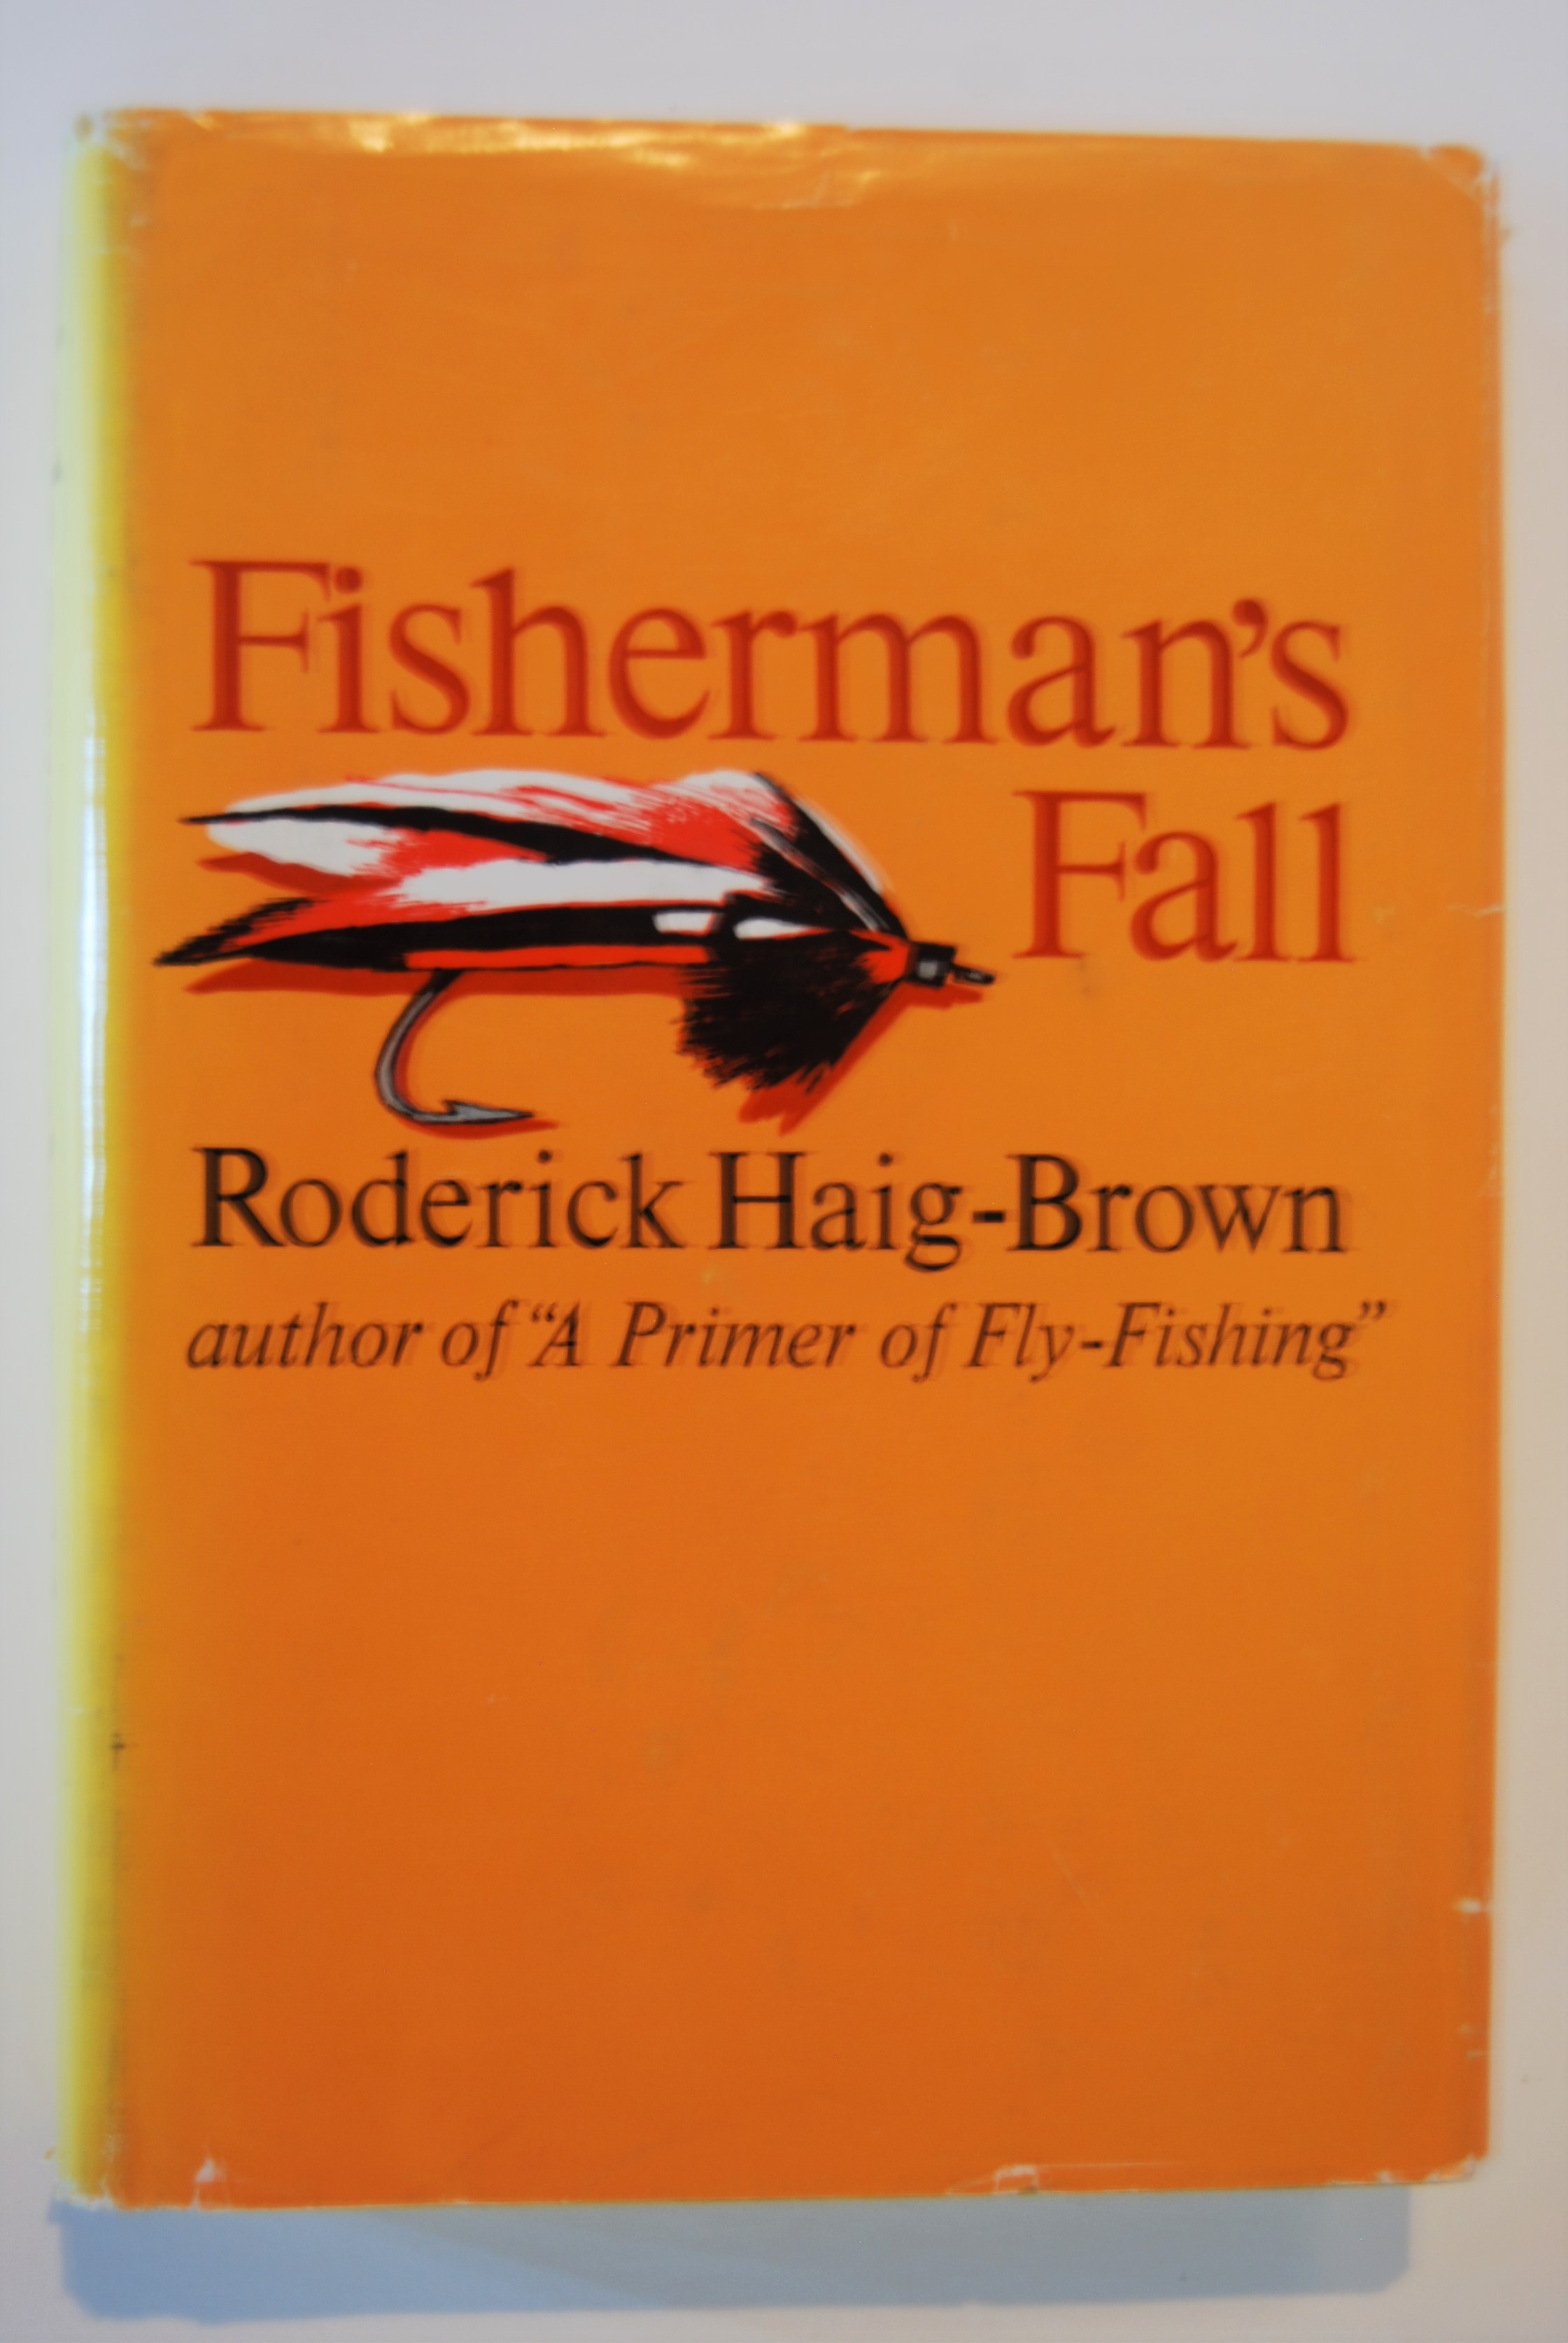 Image for FISHERMAN'S FALL.  8vo.  NY: William Morrow & Co. viii + 279 p.  1964 1st Ed.